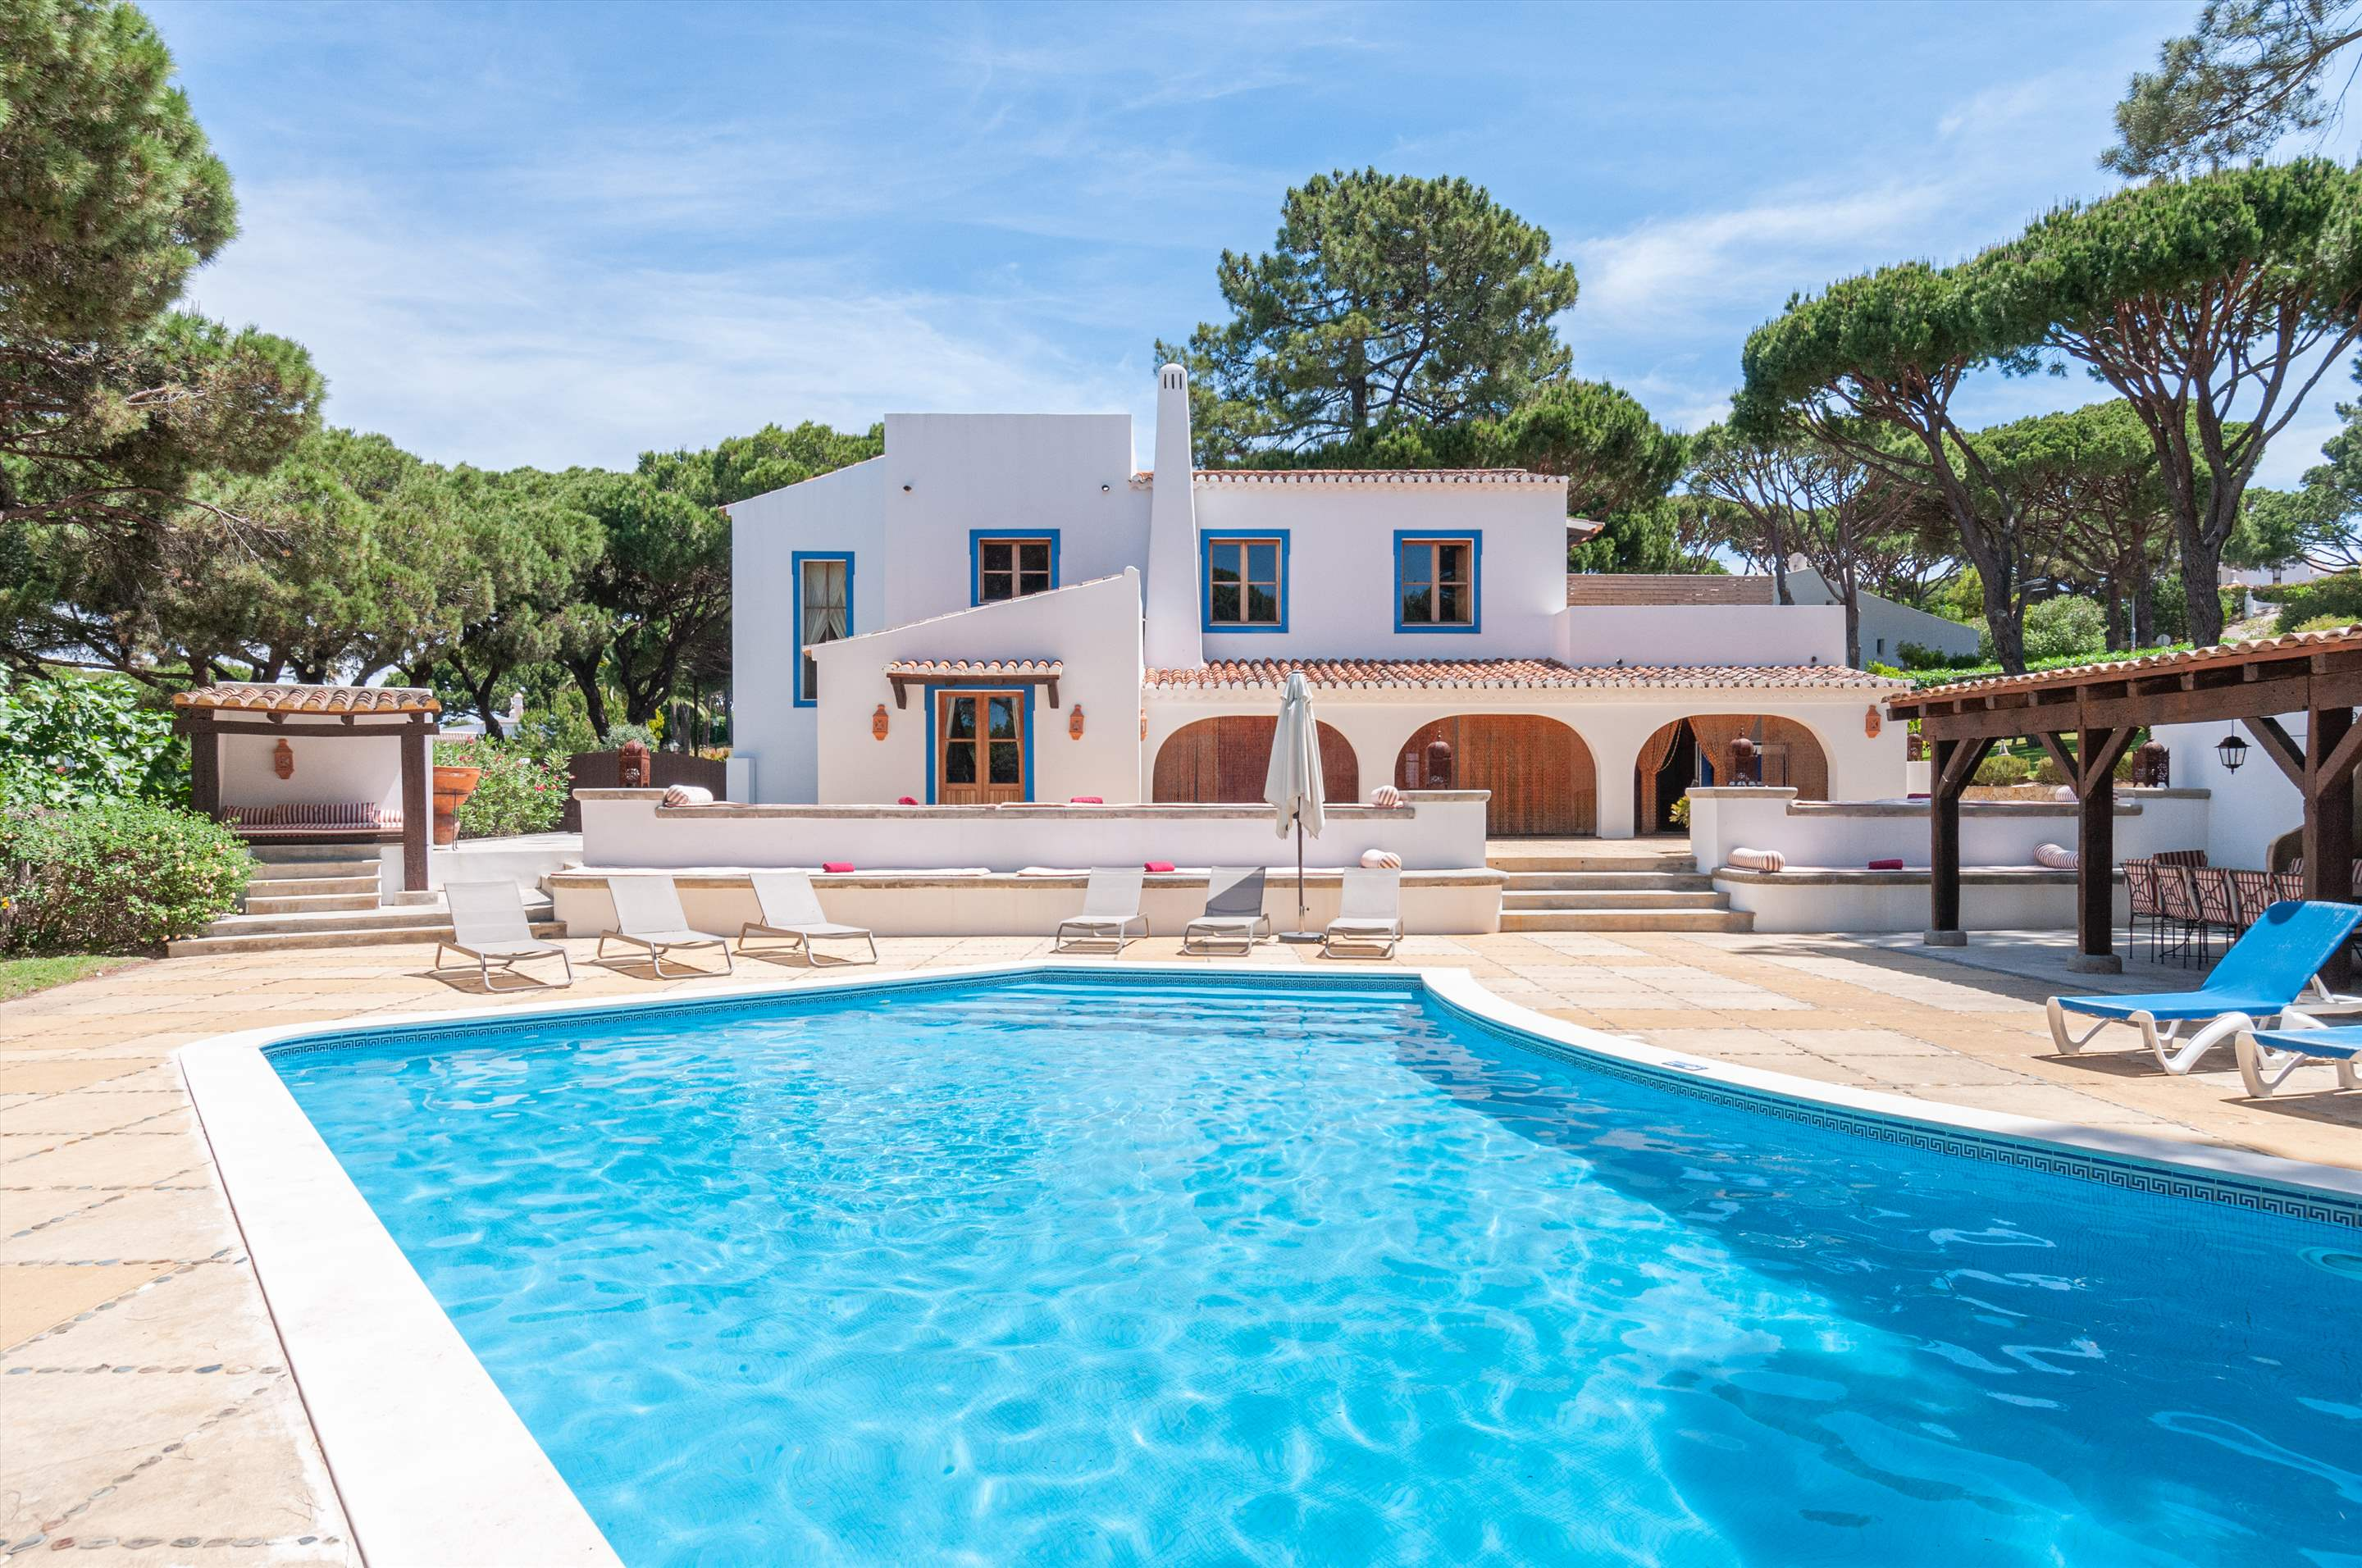 Villa Cristofina, 5 Bedroom, 5 bedroom villa in Vale do Lobo, Algarve Photo #1